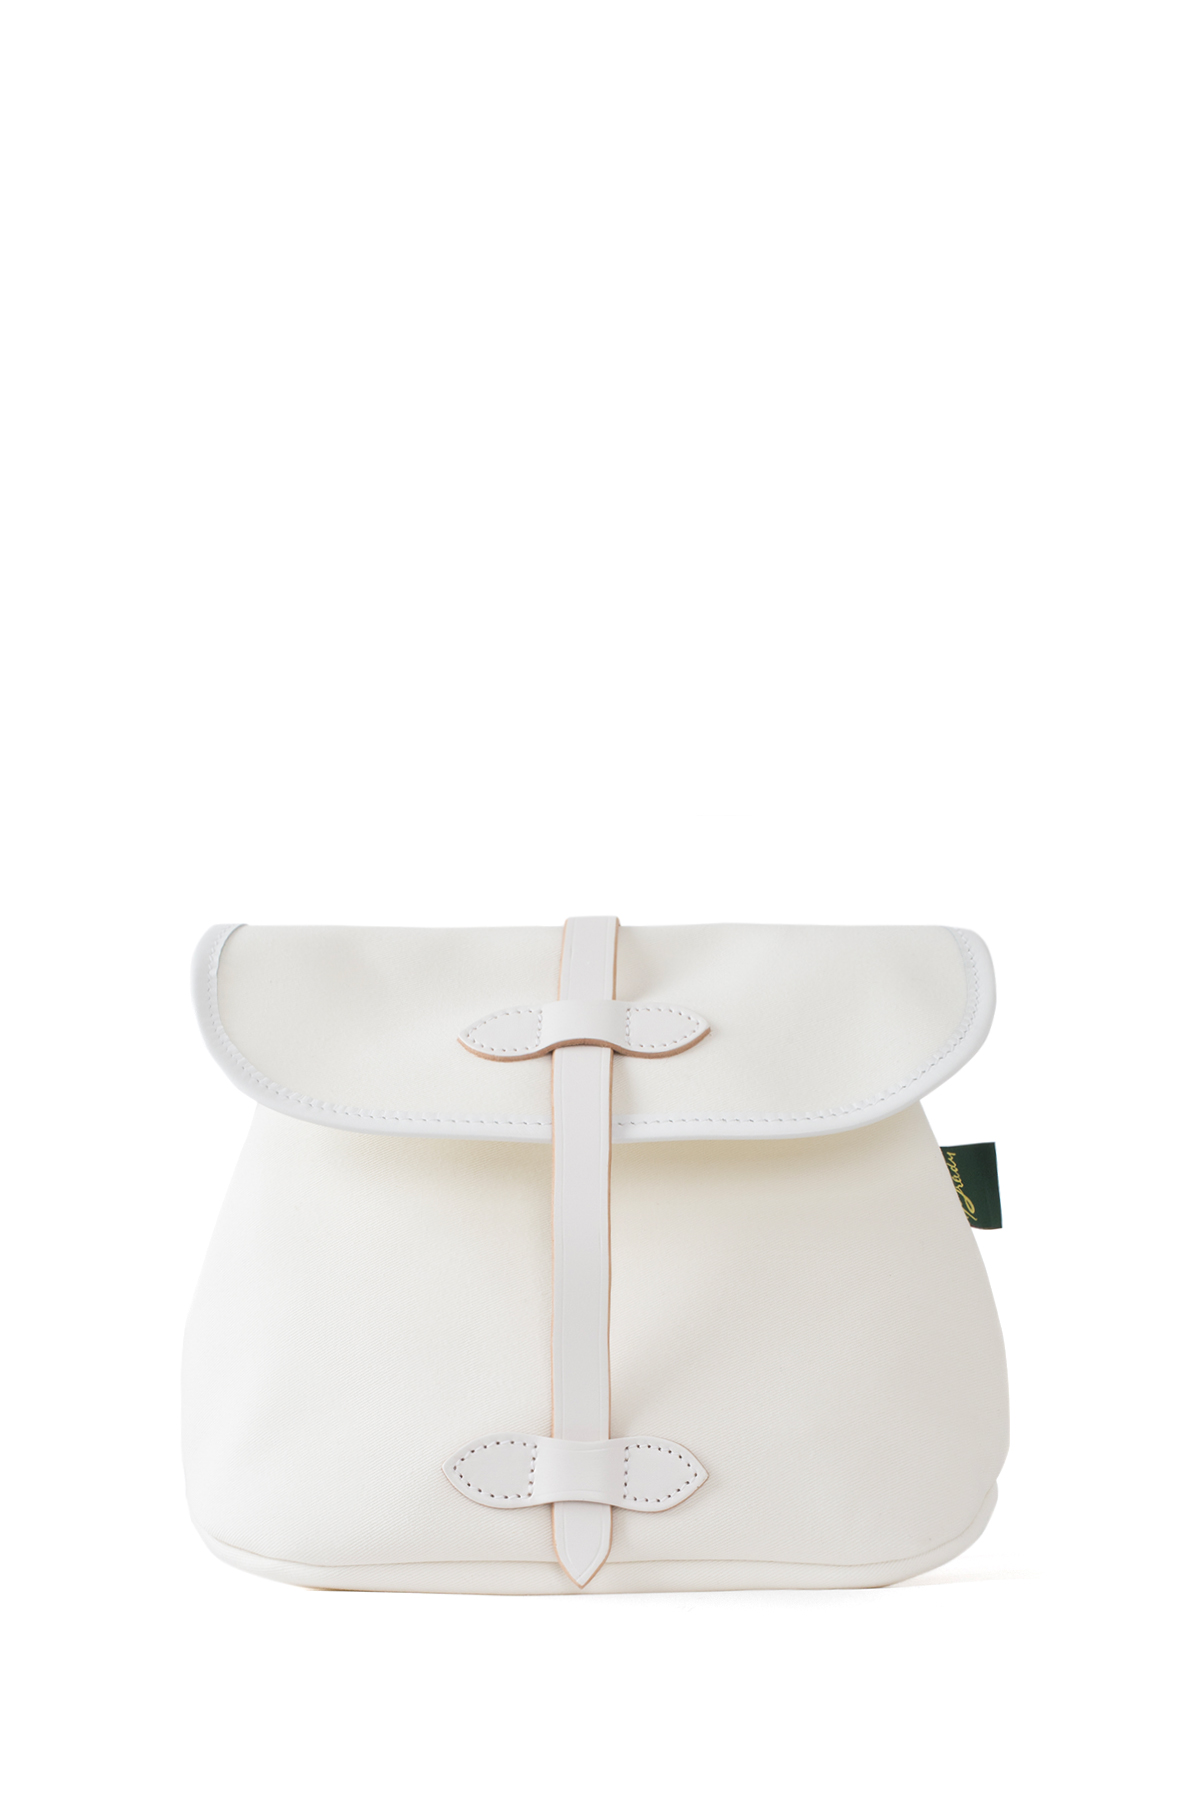 Brady Bags : AYR Cross Bag (White)